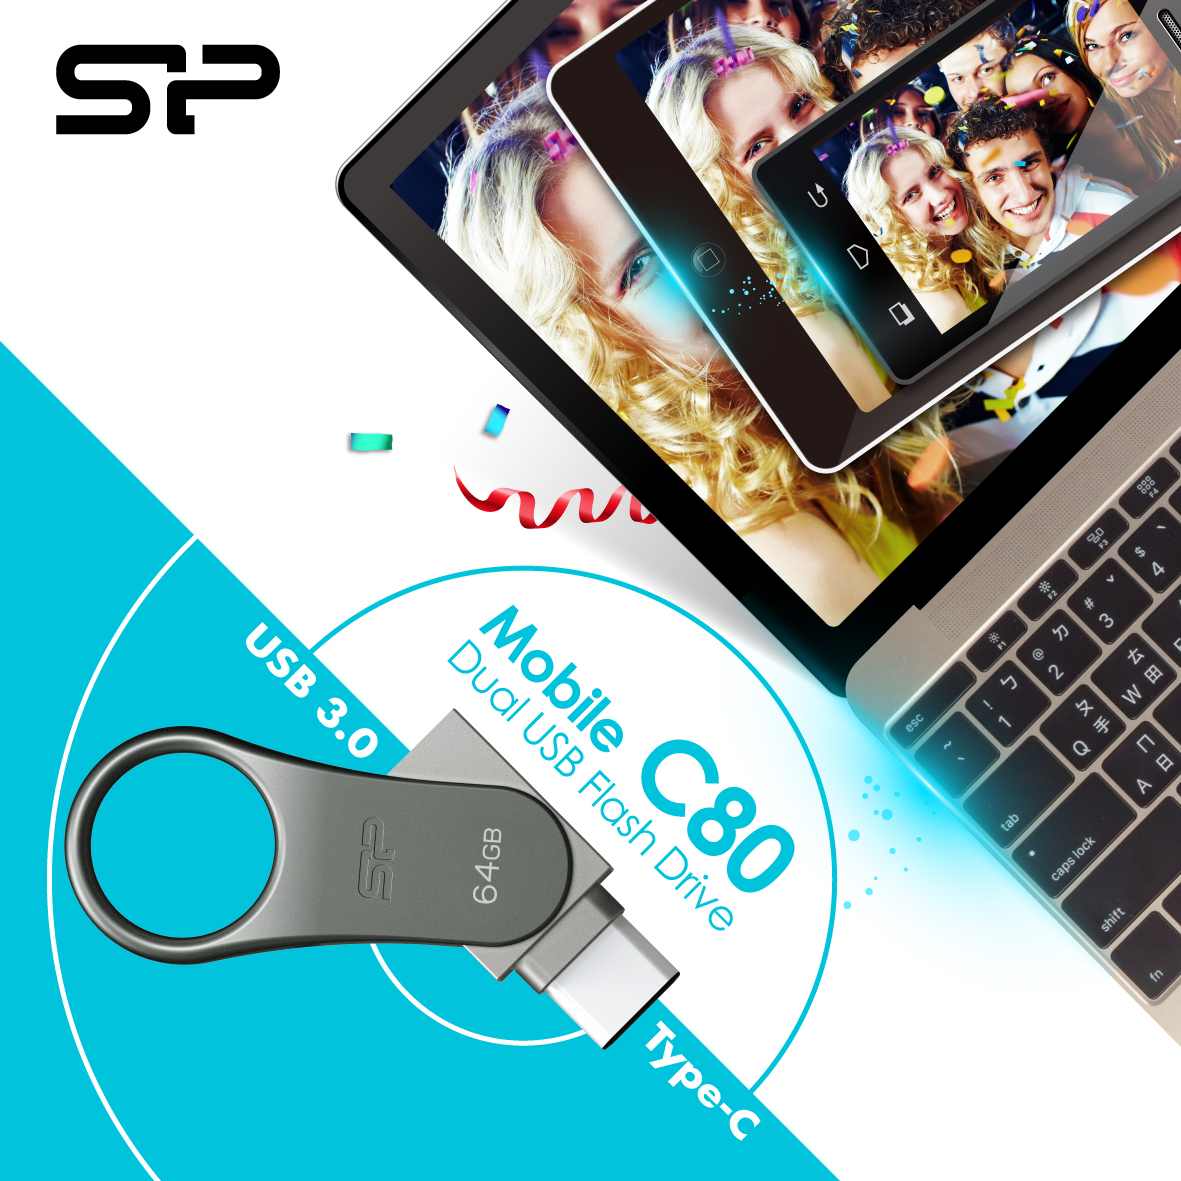 SP Silicon Power Releases Dual USB Drive – Mobile C80 for Type-C Ready Smartphones and Tablets